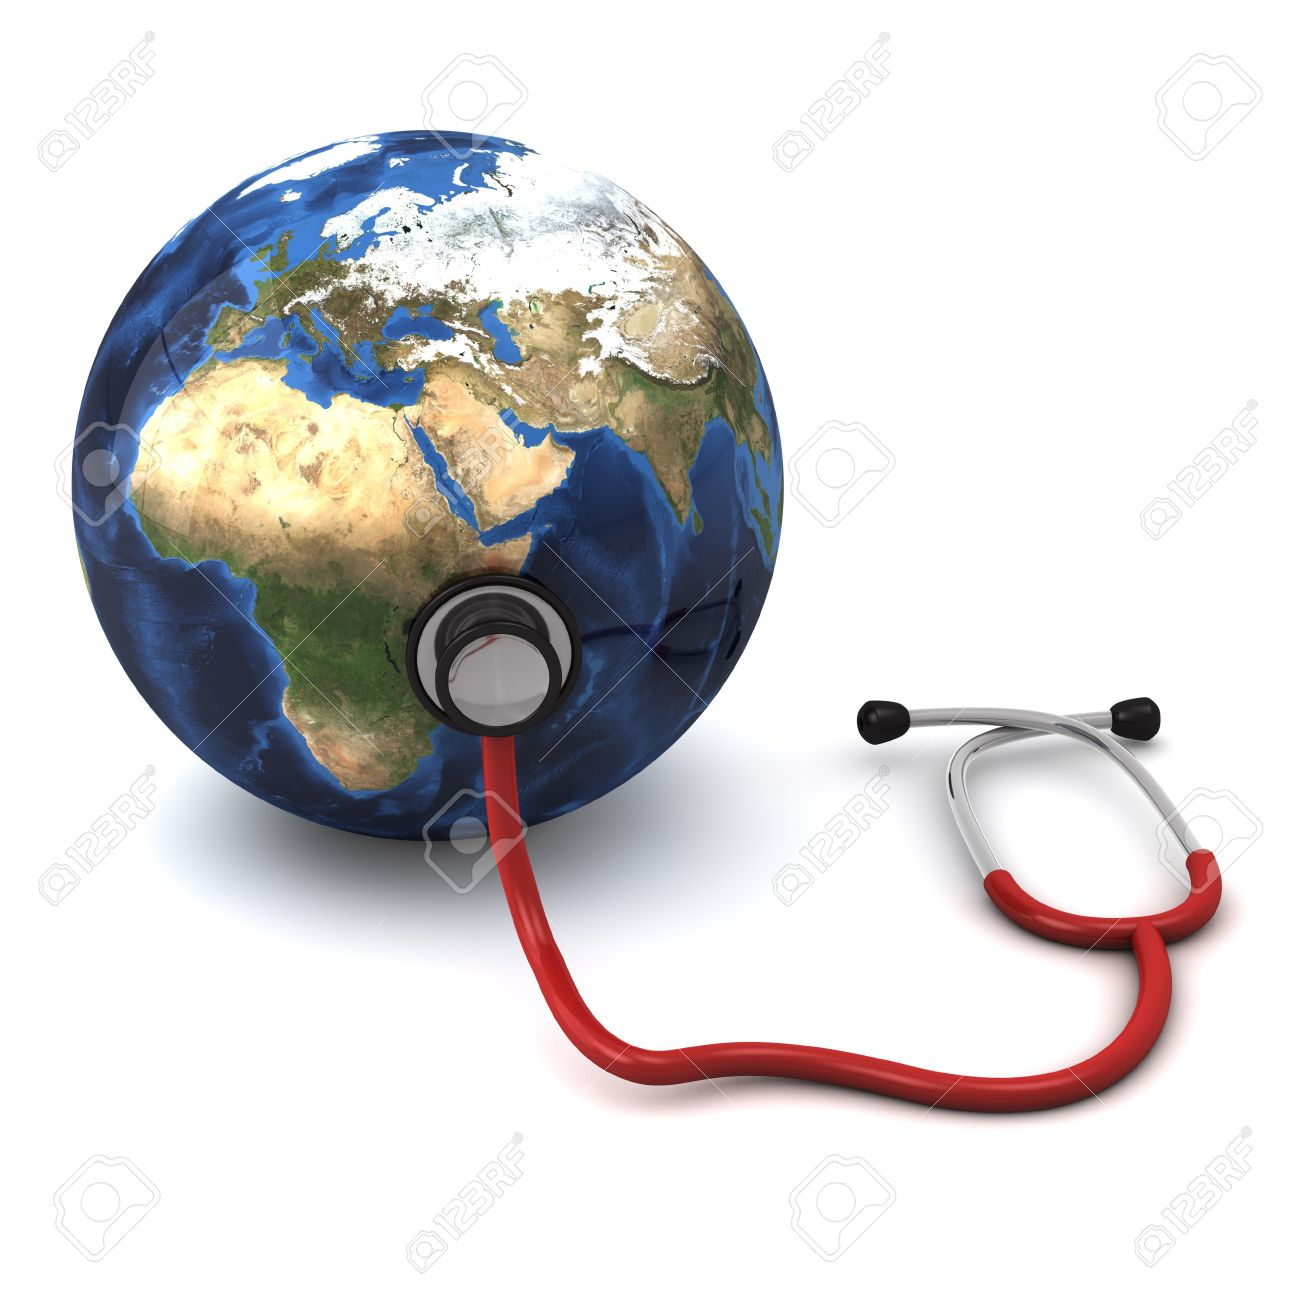 3d computer generated red stethoscope around a globe  heart  isolated on white background Stock Photo - 8828702